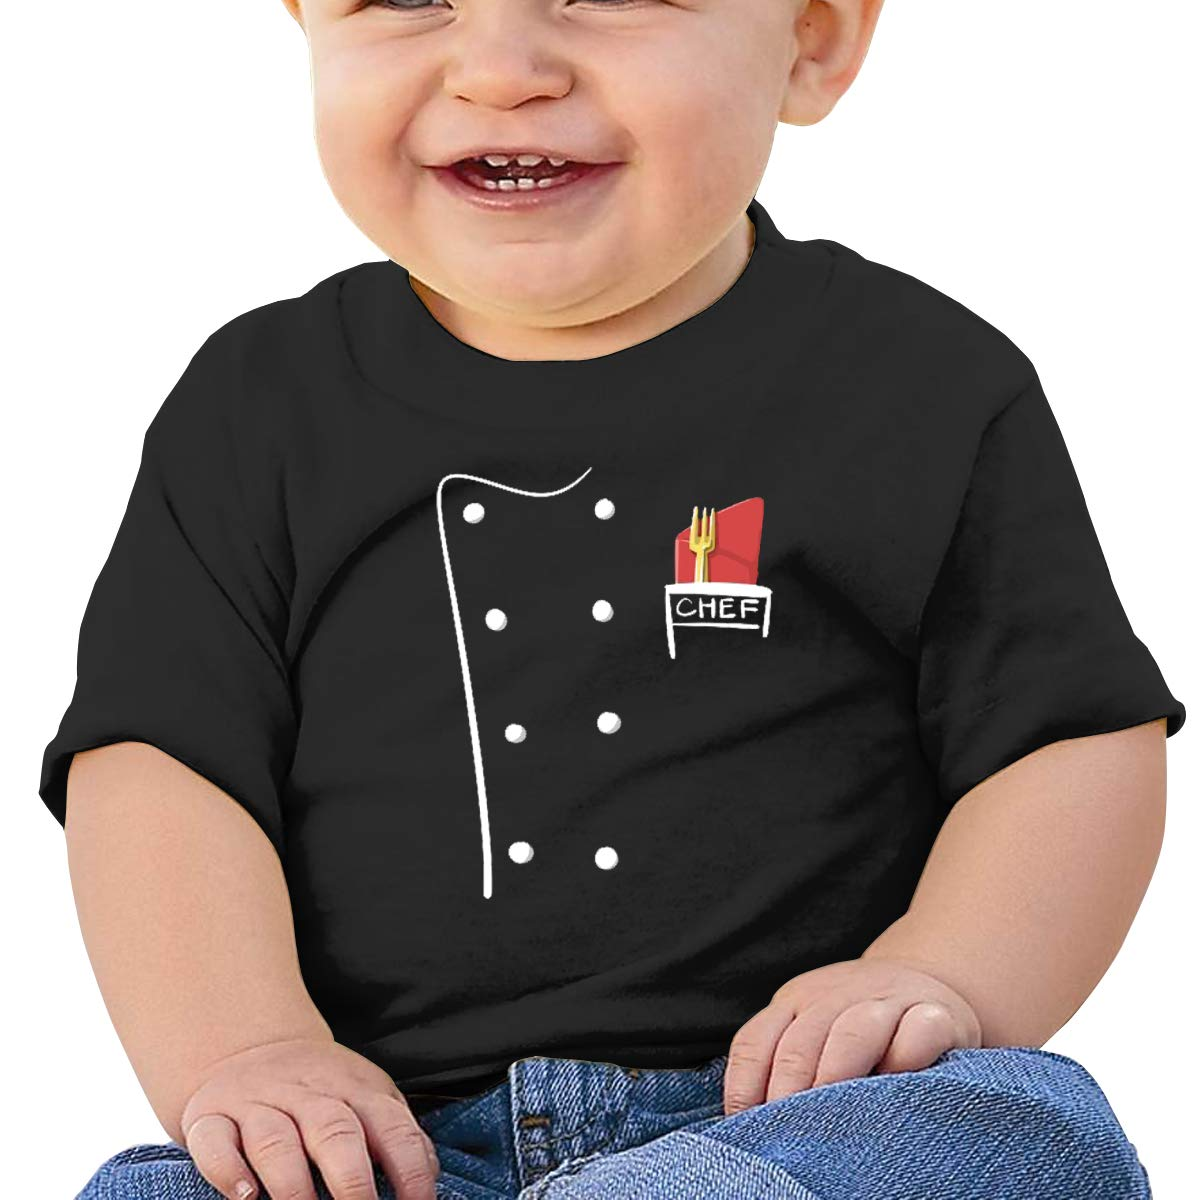 MONIKAL Unisex Infant Short Sleeve T-Shirt Cute Chef Top Chef Toddler Kids Organic Cotton Graphic Tee Tops